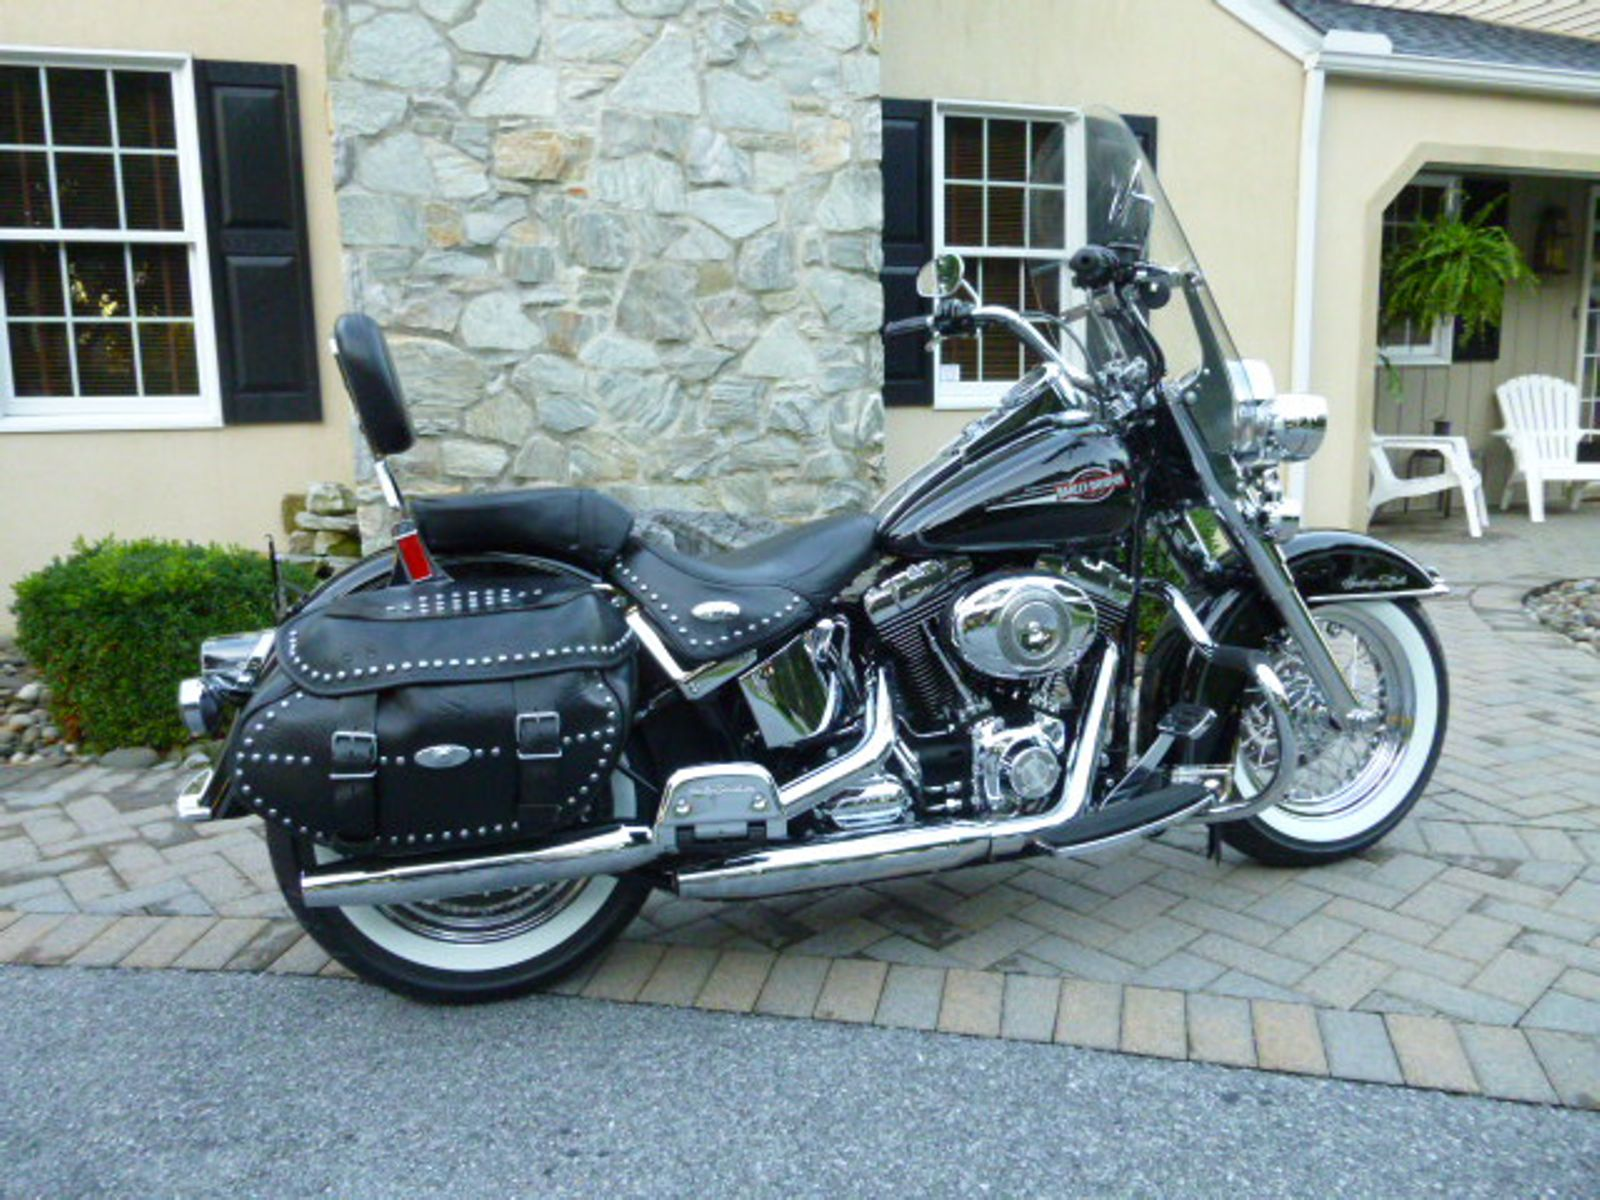 2008 flstc heritage softail classic used harley. Black Bedroom Furniture Sets. Home Design Ideas